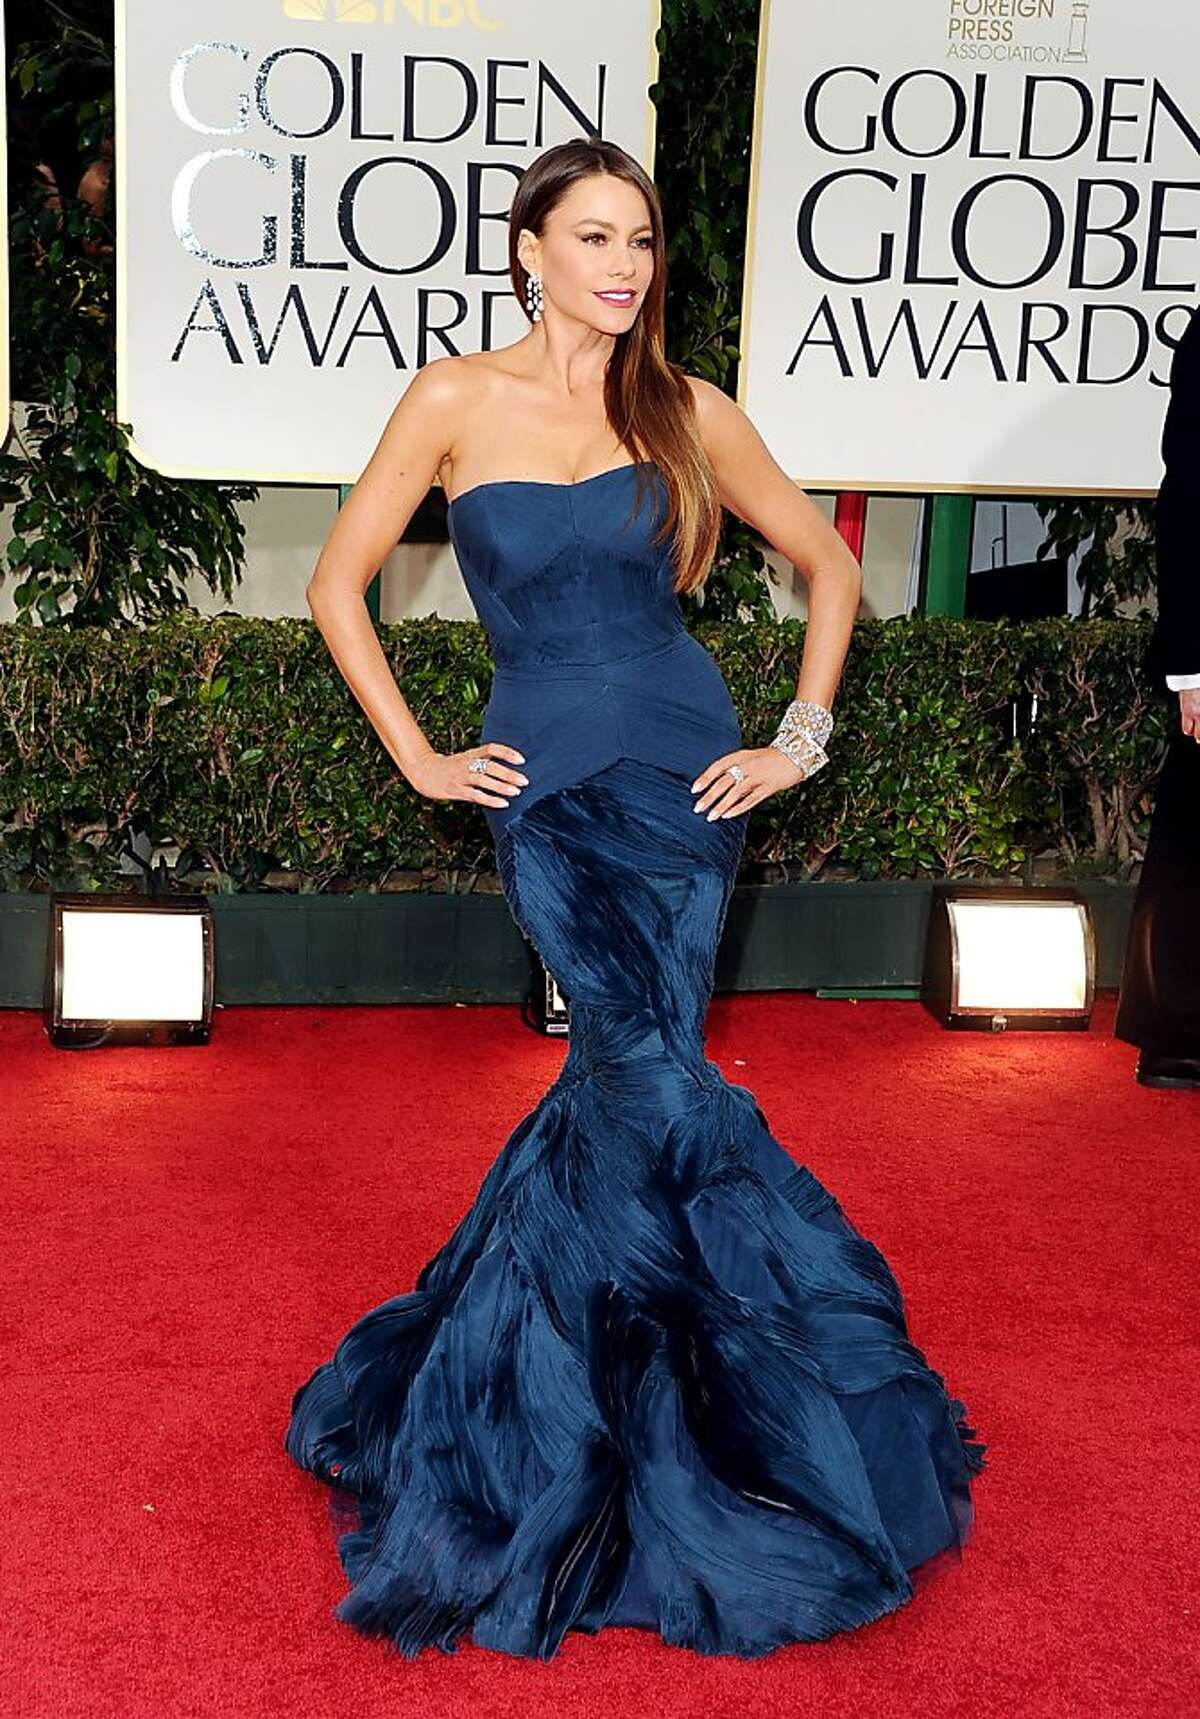 BEVERLY HILLS, CA - JANUARY 15: Actress Sofia Vergara arrives at the 69th Annual Golden Globe Awards held at the Beverly Hilton Hotel on January 15, 2012 in Beverly Hills, California. (Photo by Jason Merritt/Getty Images)